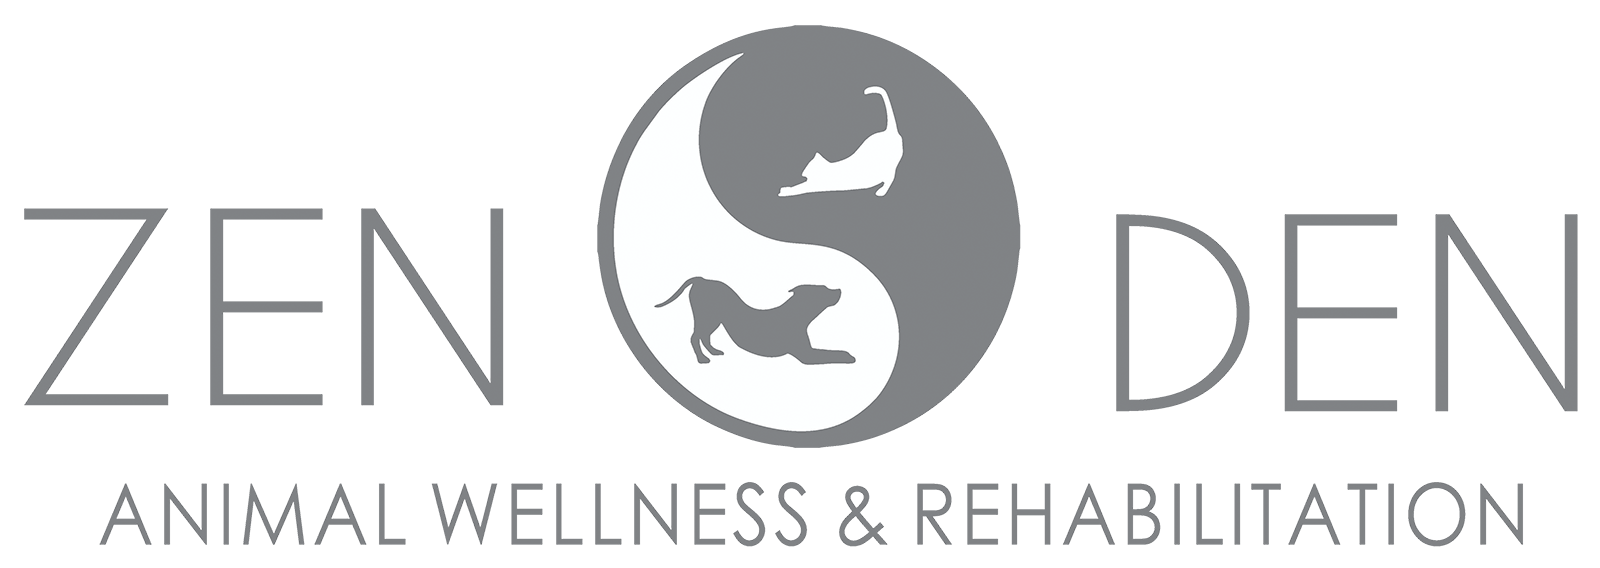 Zen Den Animal Wellness & Rehabilitation